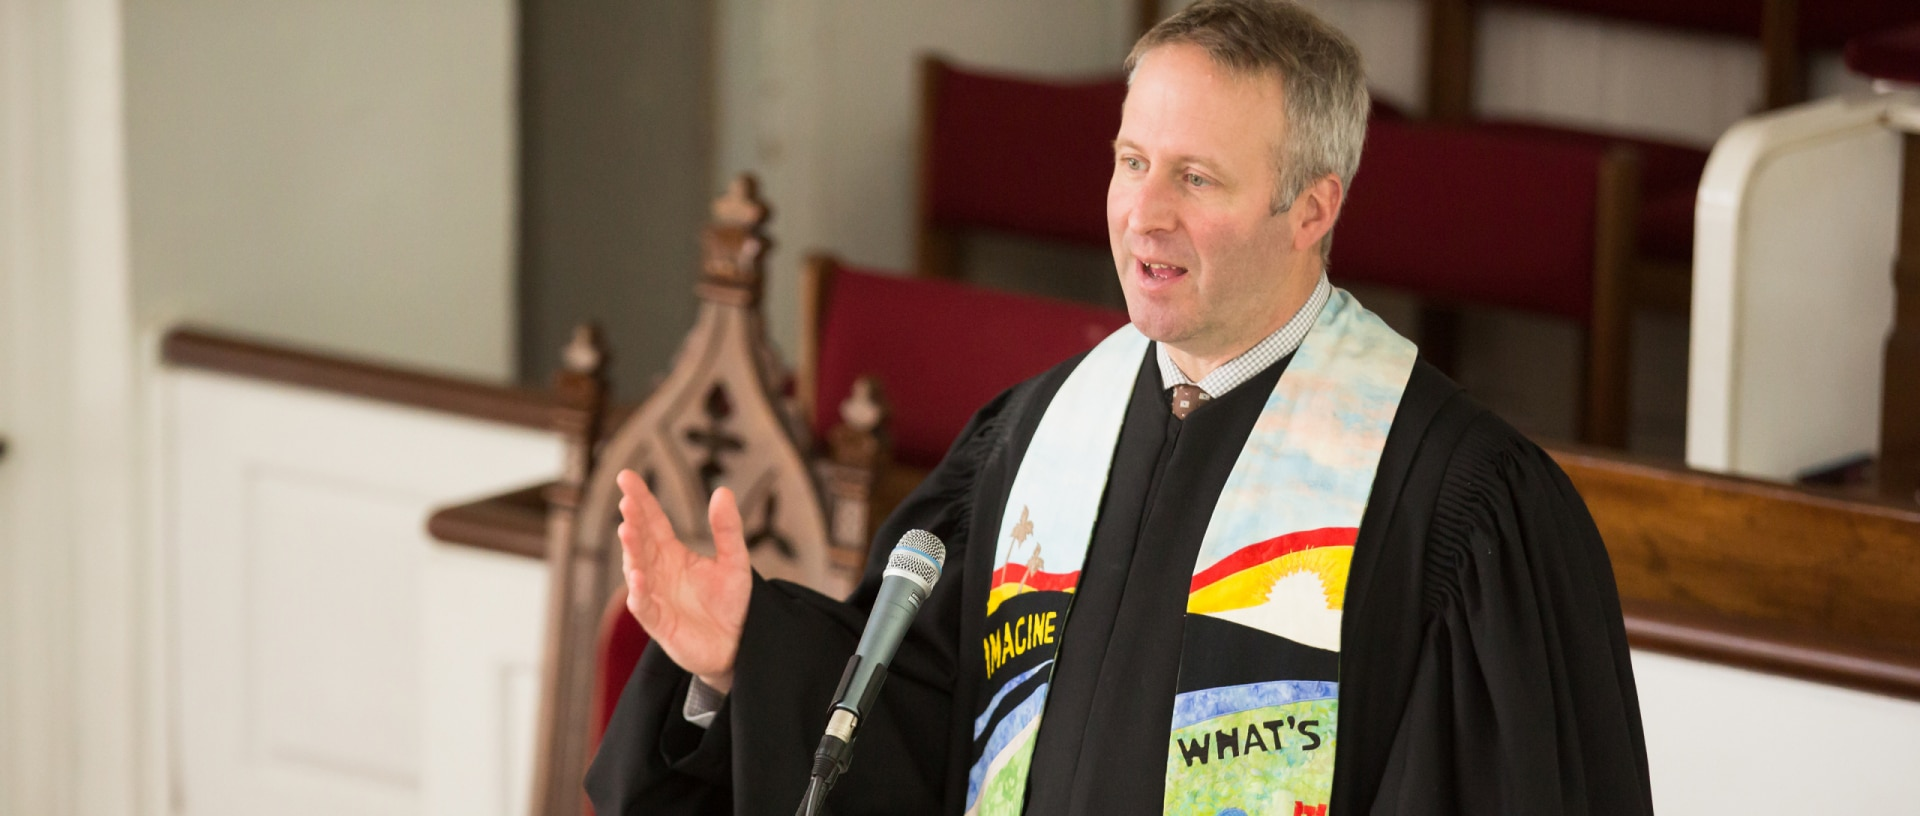 Rev. Brent Damrow preaches at the Stockbridge Congregational Church